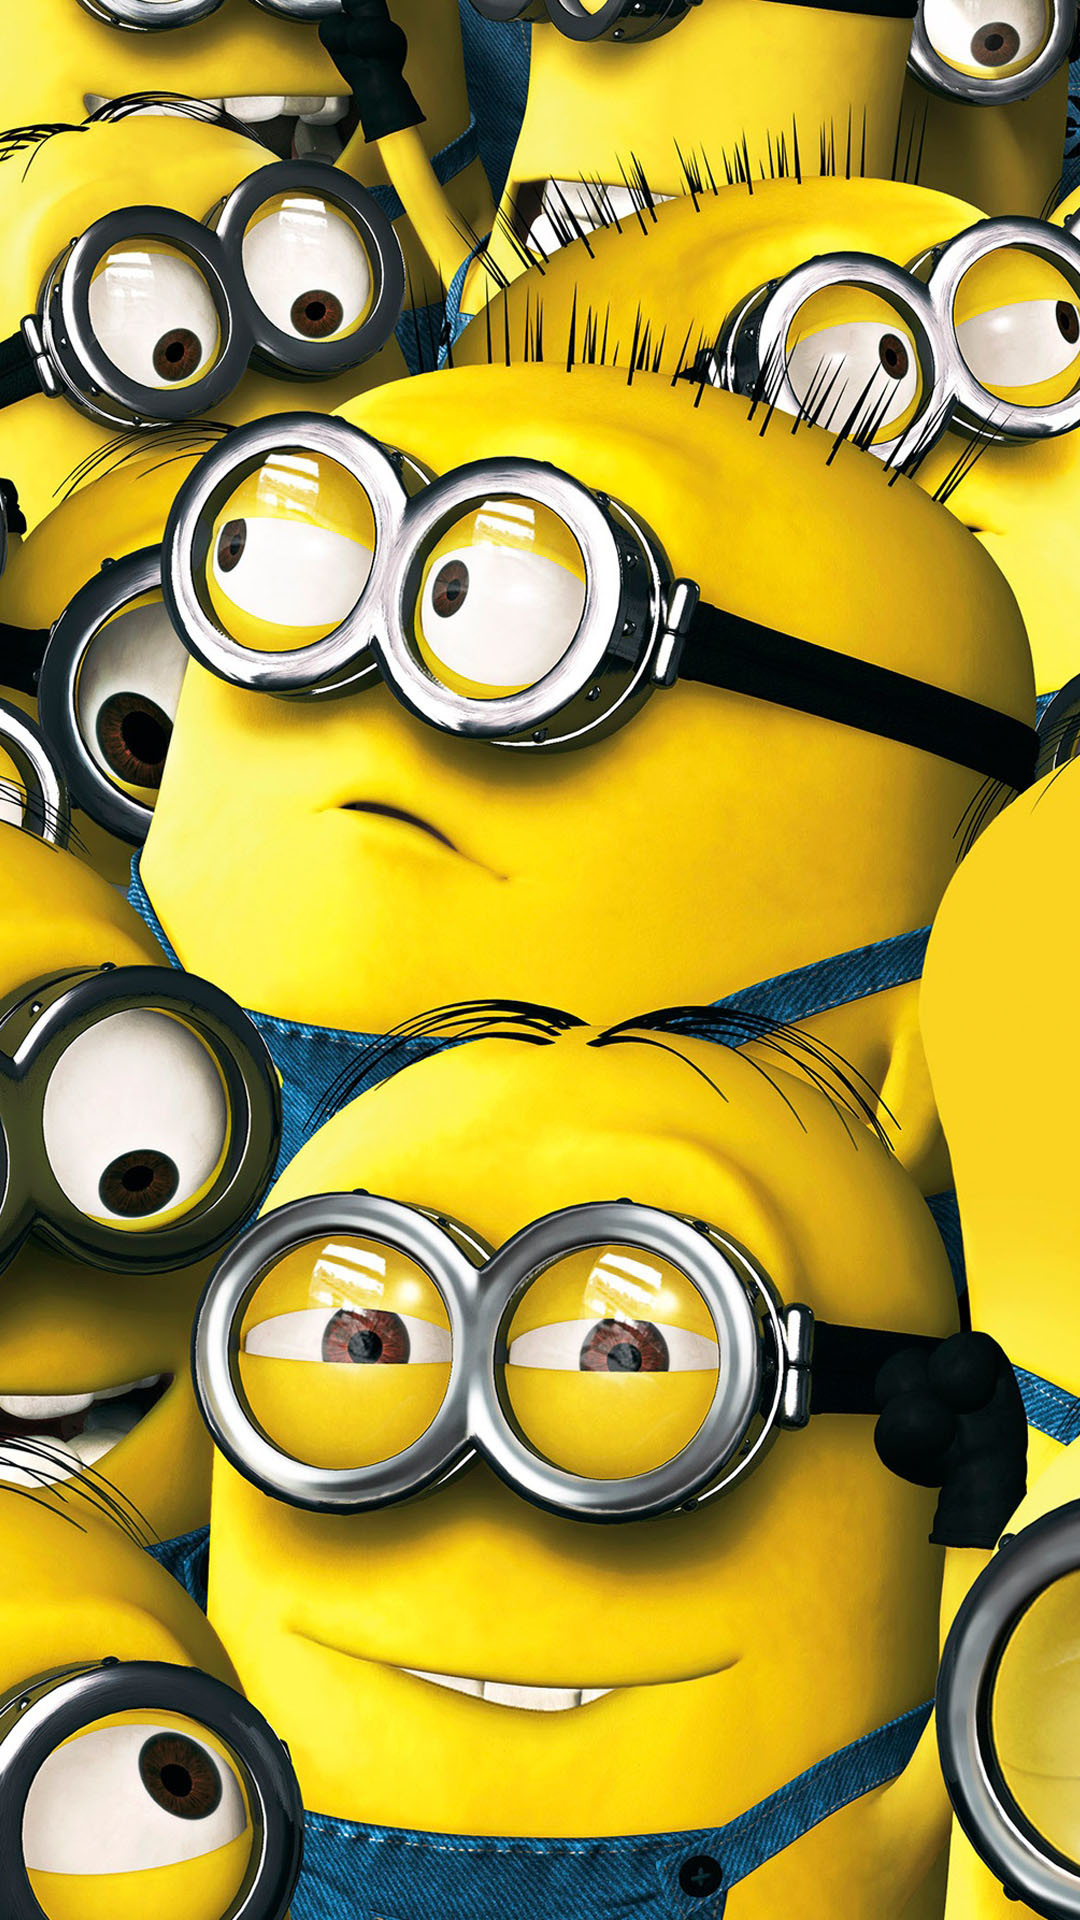 1080x1920 Cute Minion Music Wallpaper HD Source · Minion Wallpapers Free  WallpaperSafari